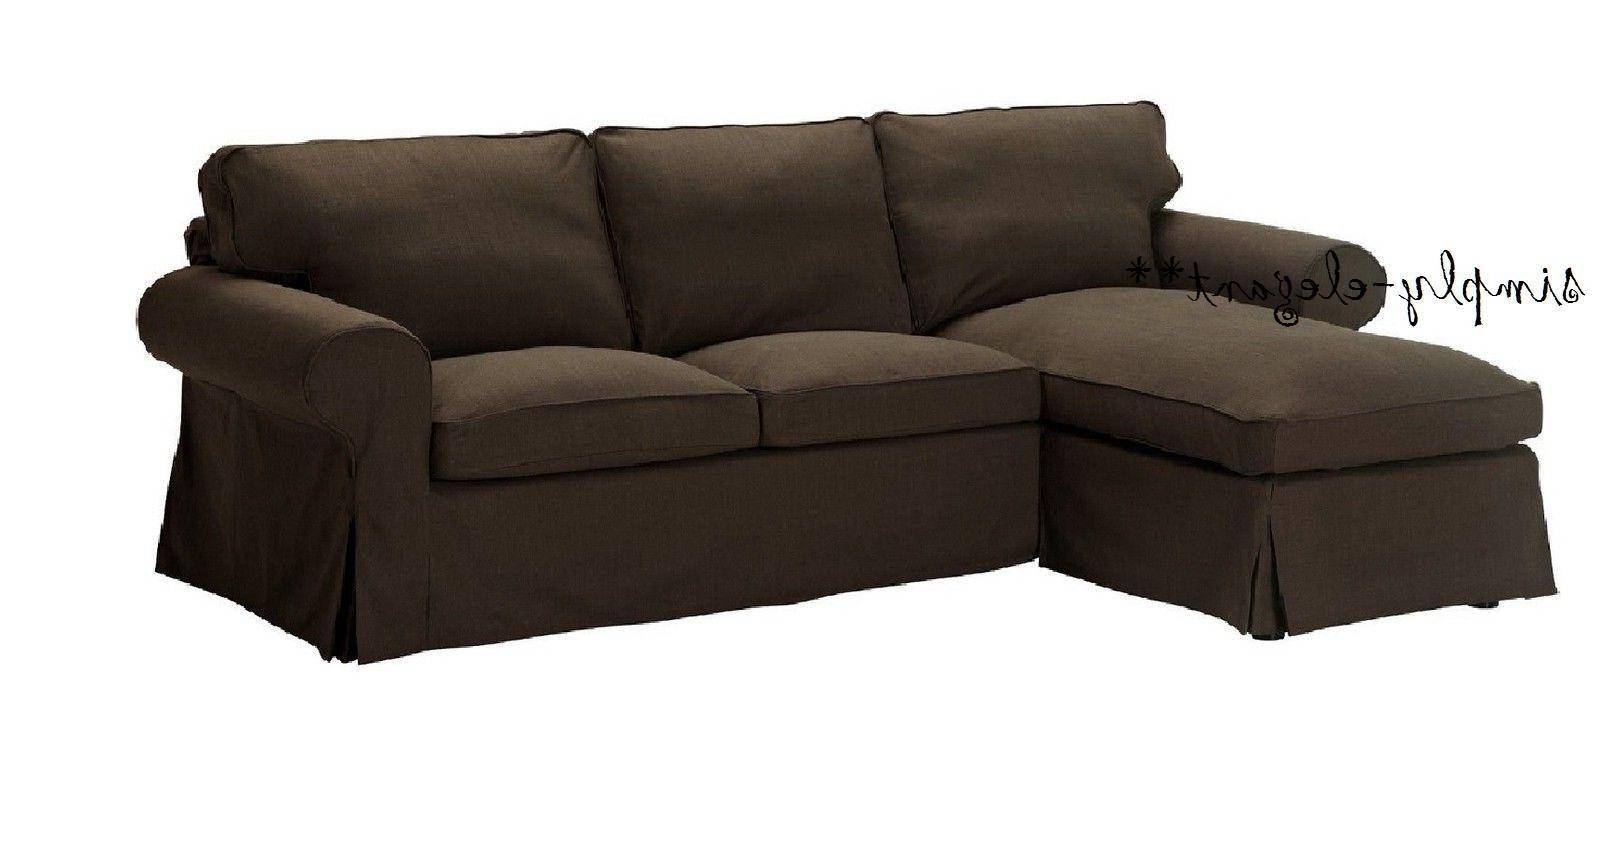 Loveseats With Chaise With Most Recently Released Ikea Ektorp Svanby Brown Slipcover Cover For Loveseat W/ Chaise (View 9 of 15)